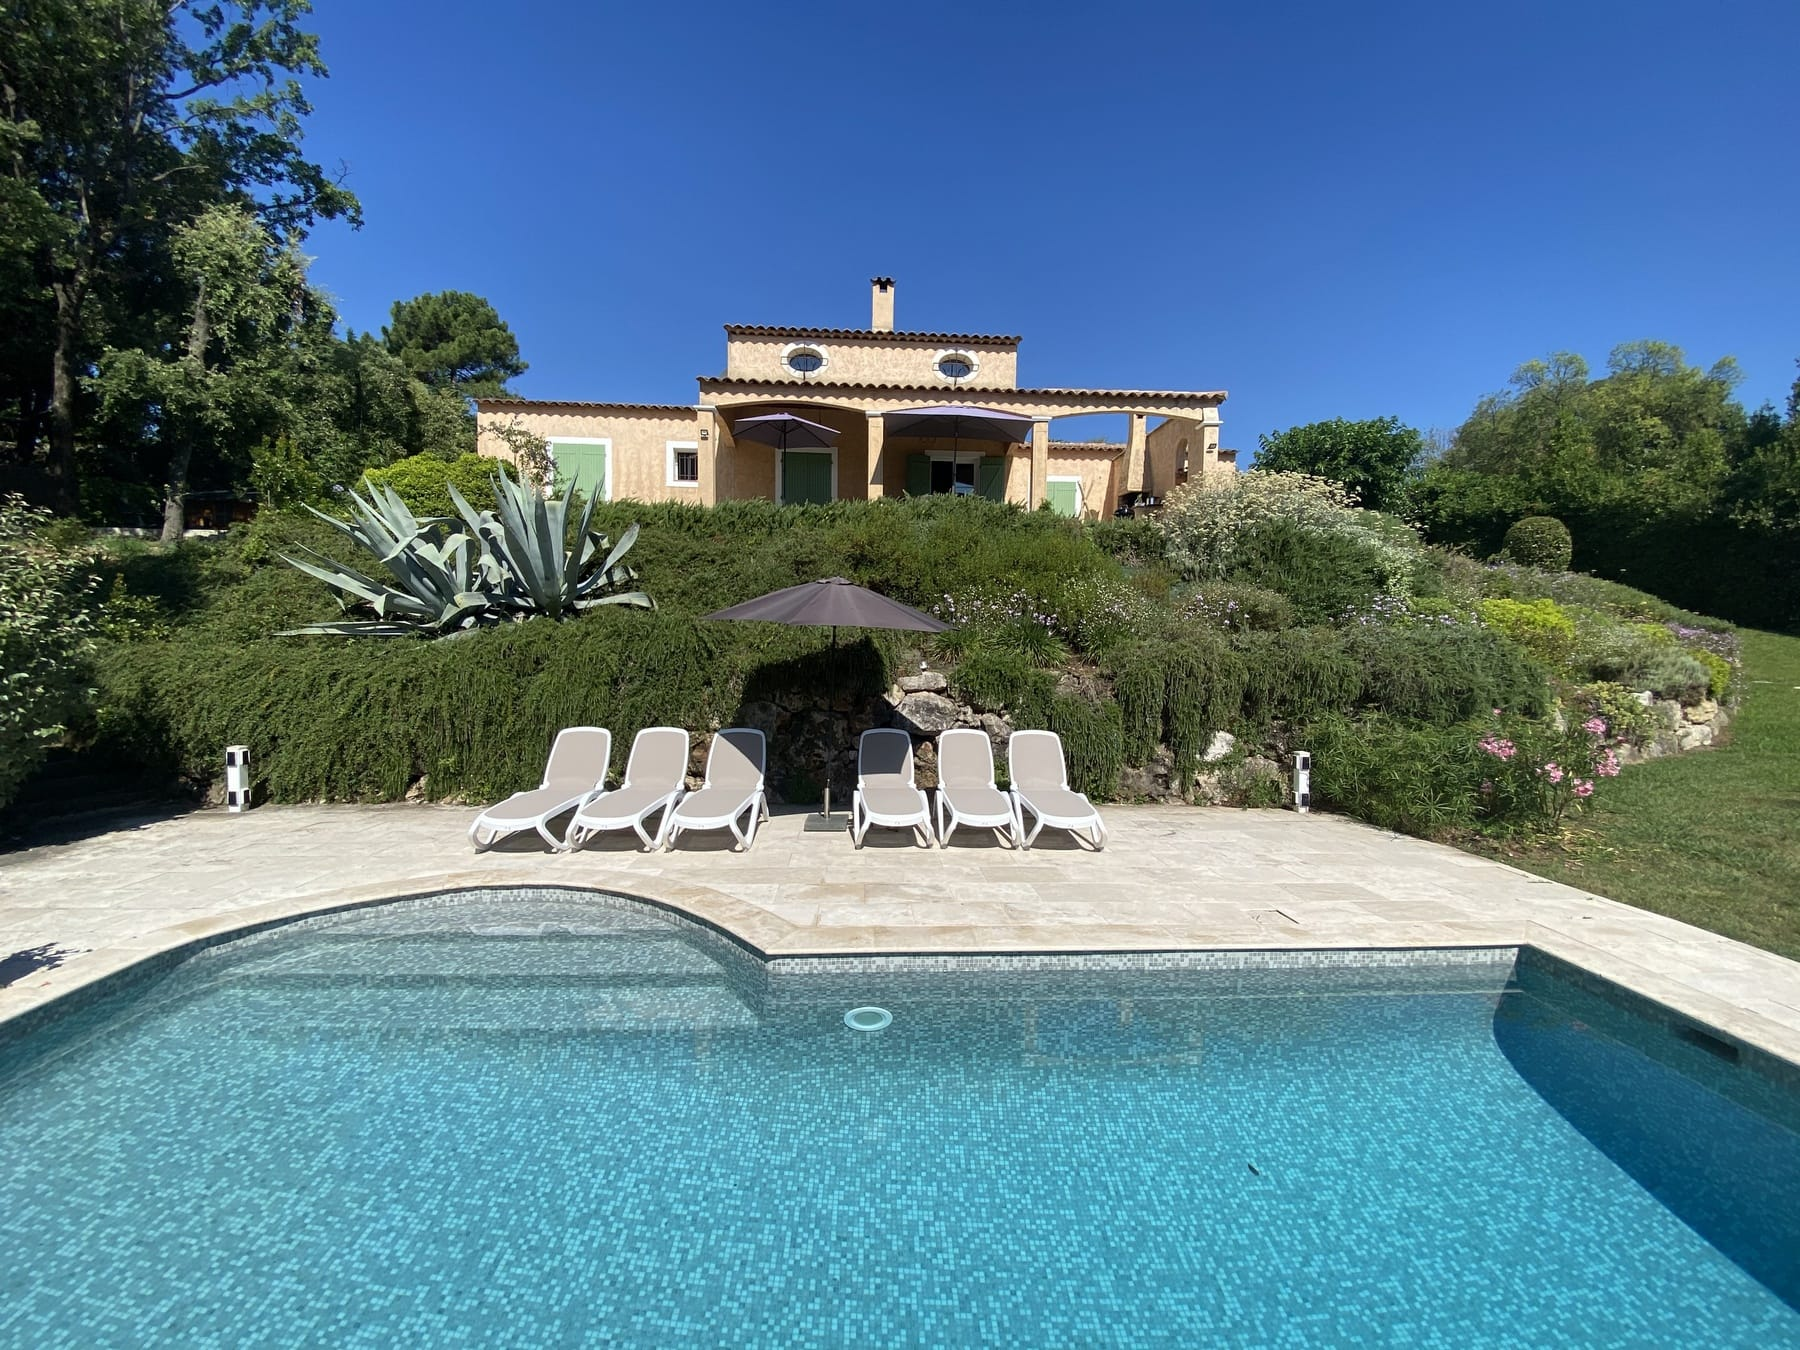 Holiday home with pool Cote d'Azur - Valbonne area Grasse, Antibes, Biot, Cannes